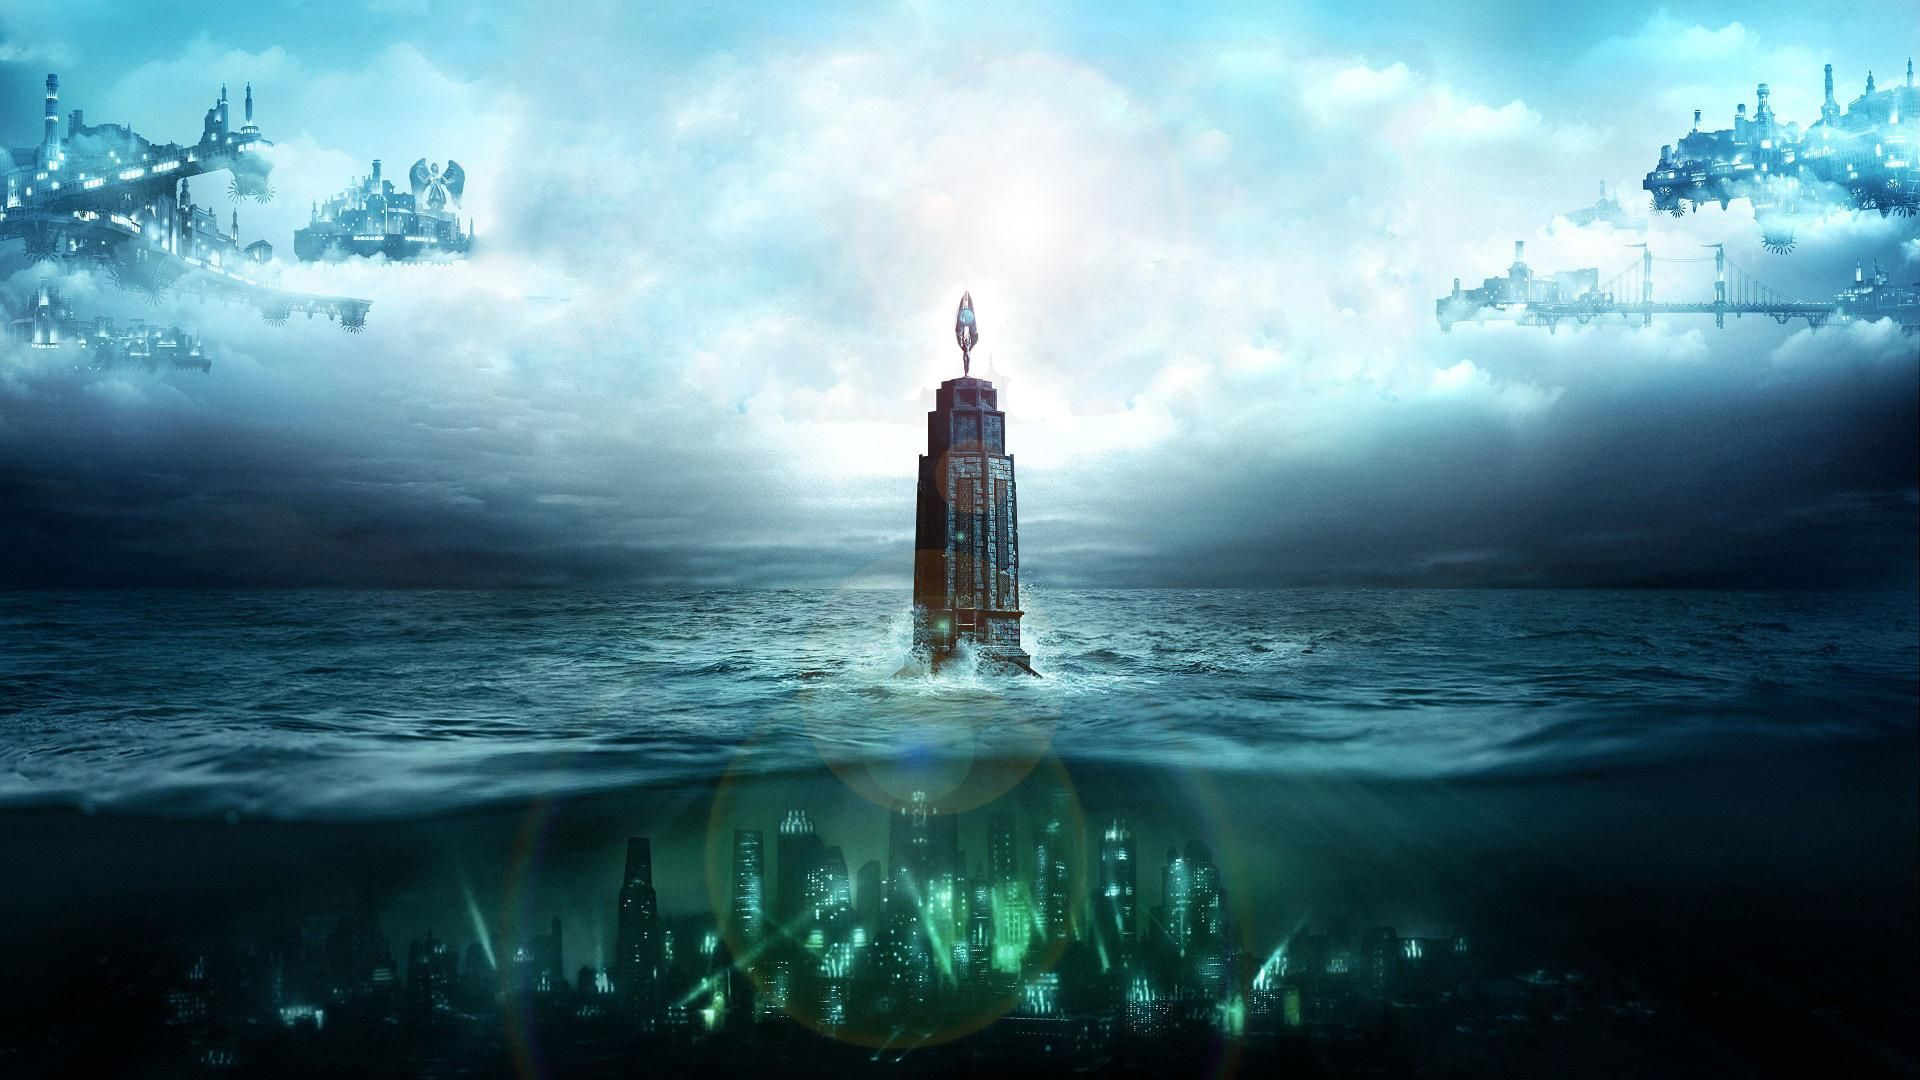 There s always a lighthouse There s always a city [ ]